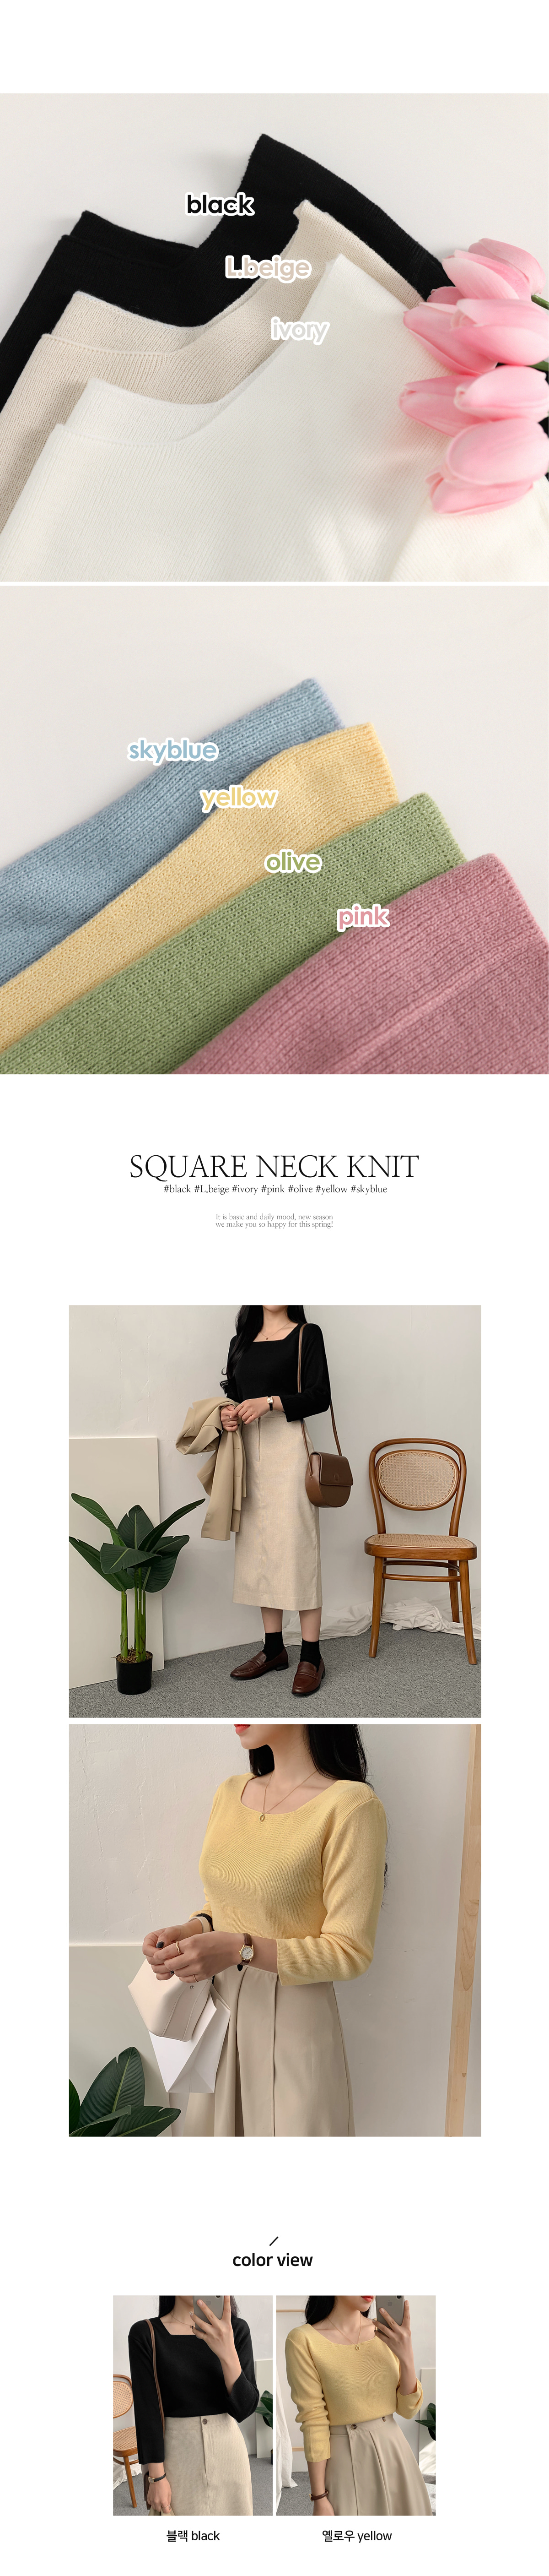 Xeron Square Knit